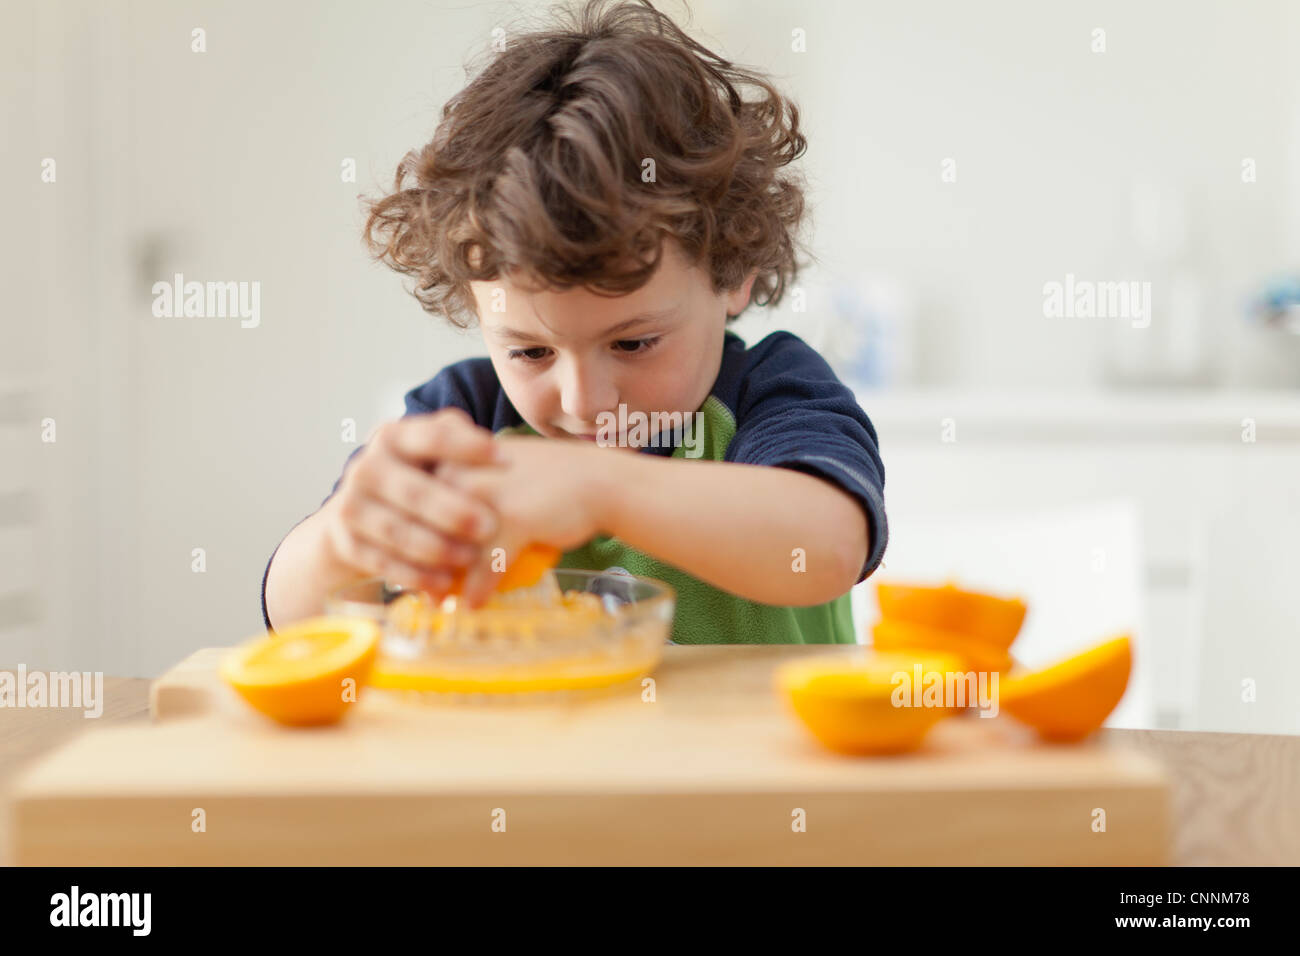 Boy squeezing oranges to make juice Stock Photo